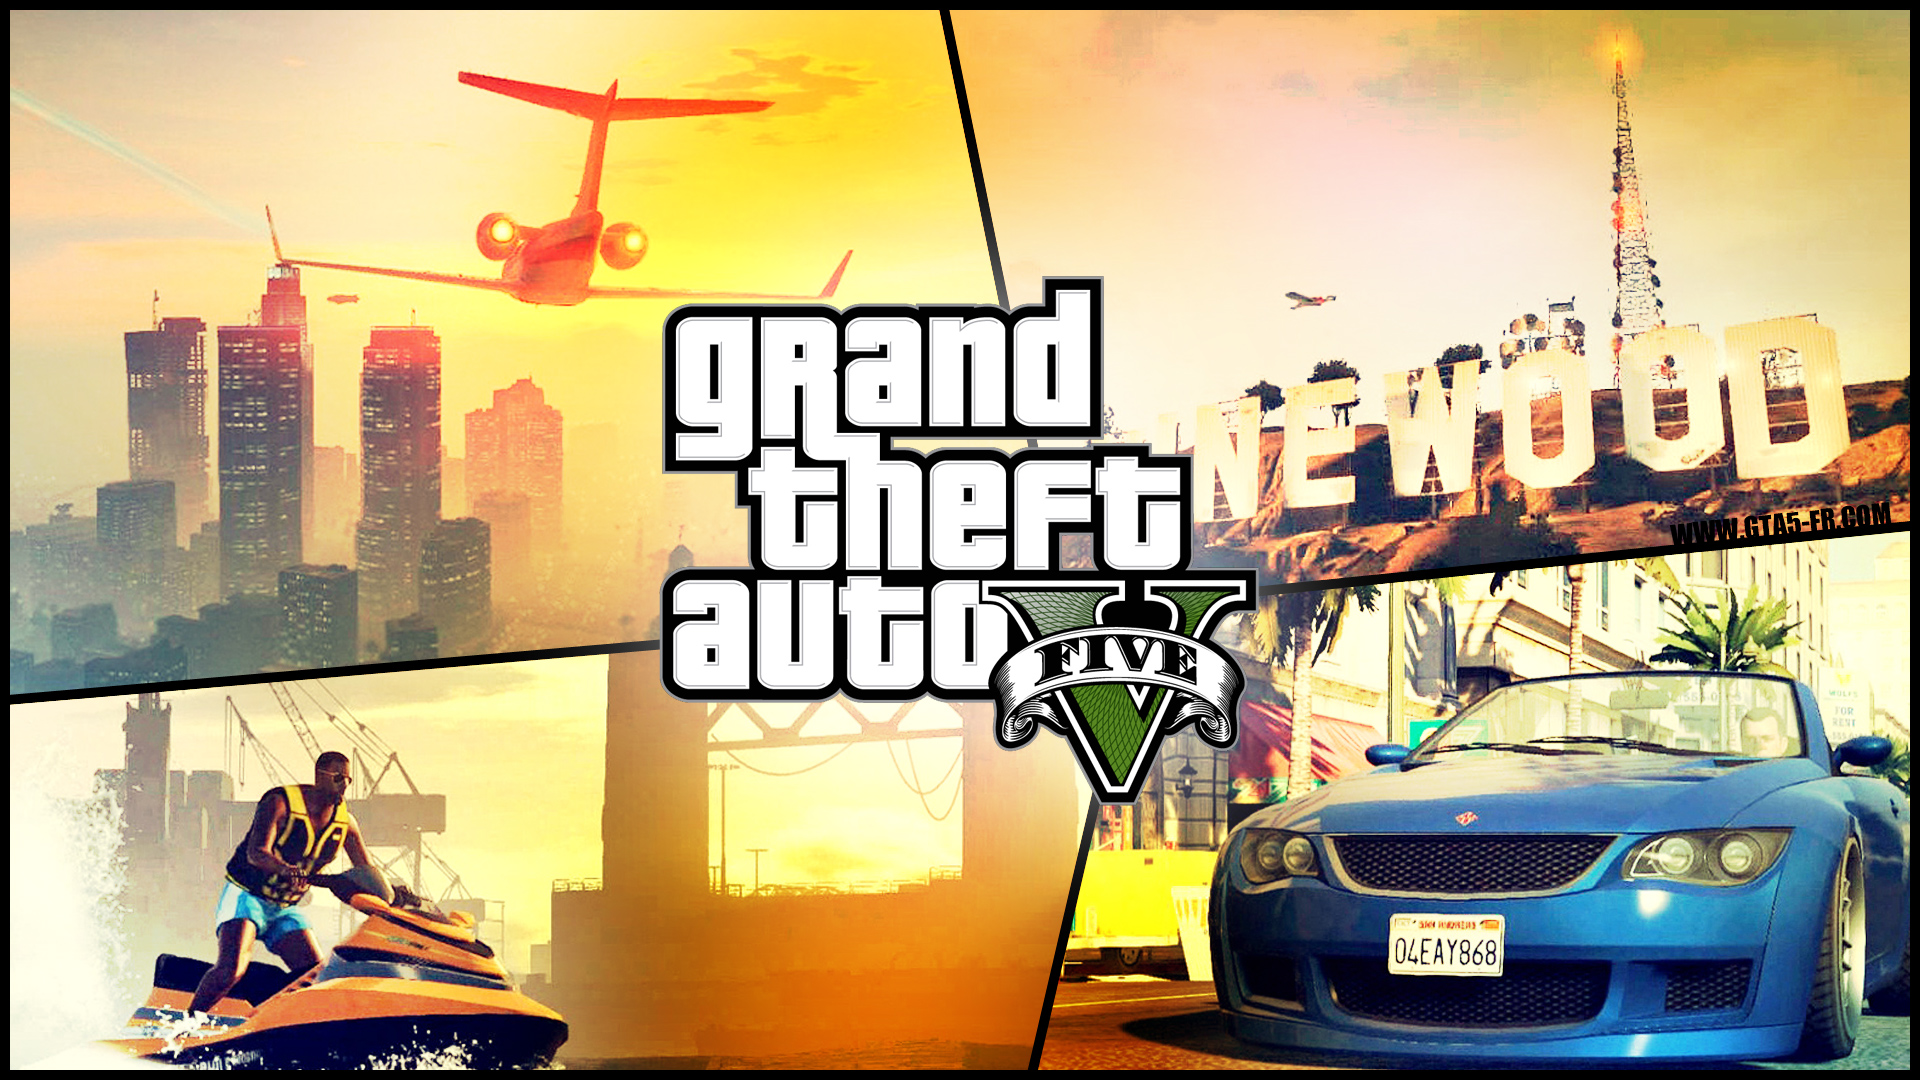 wallpaper gta 5 grand theft auto v rockstar 12jpg 1920x1080